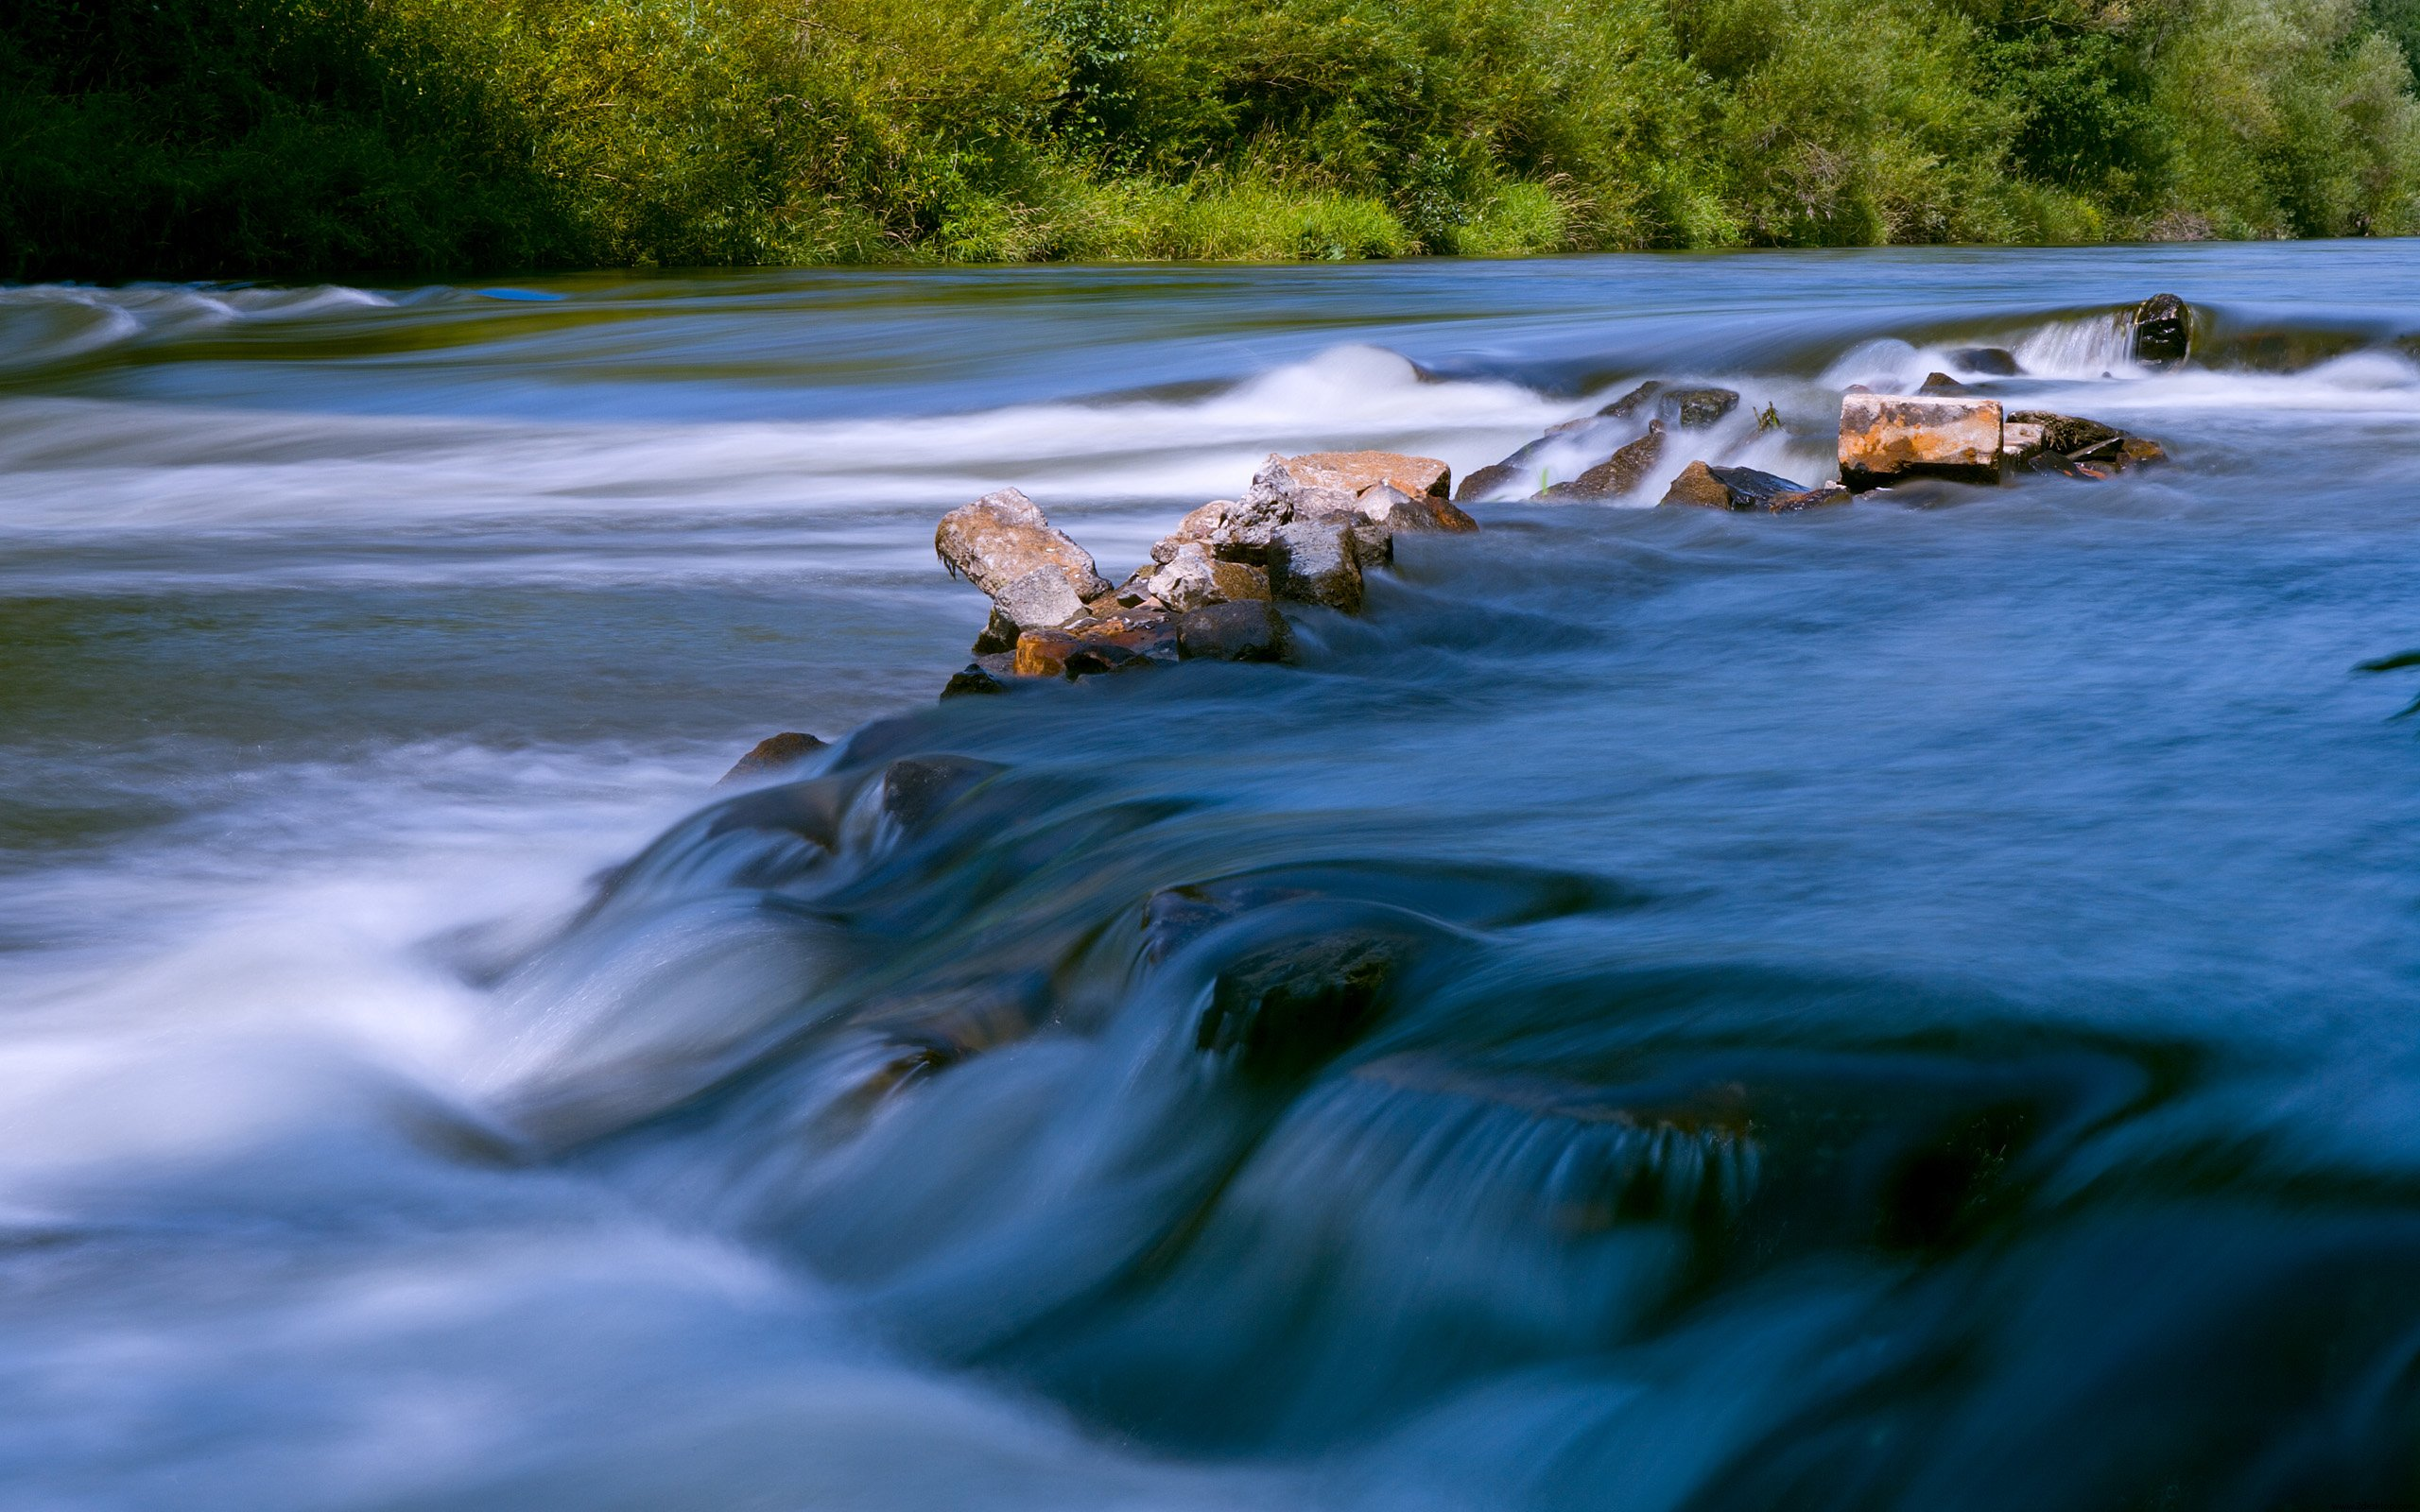 amazing water rivers moving hd pics and images download